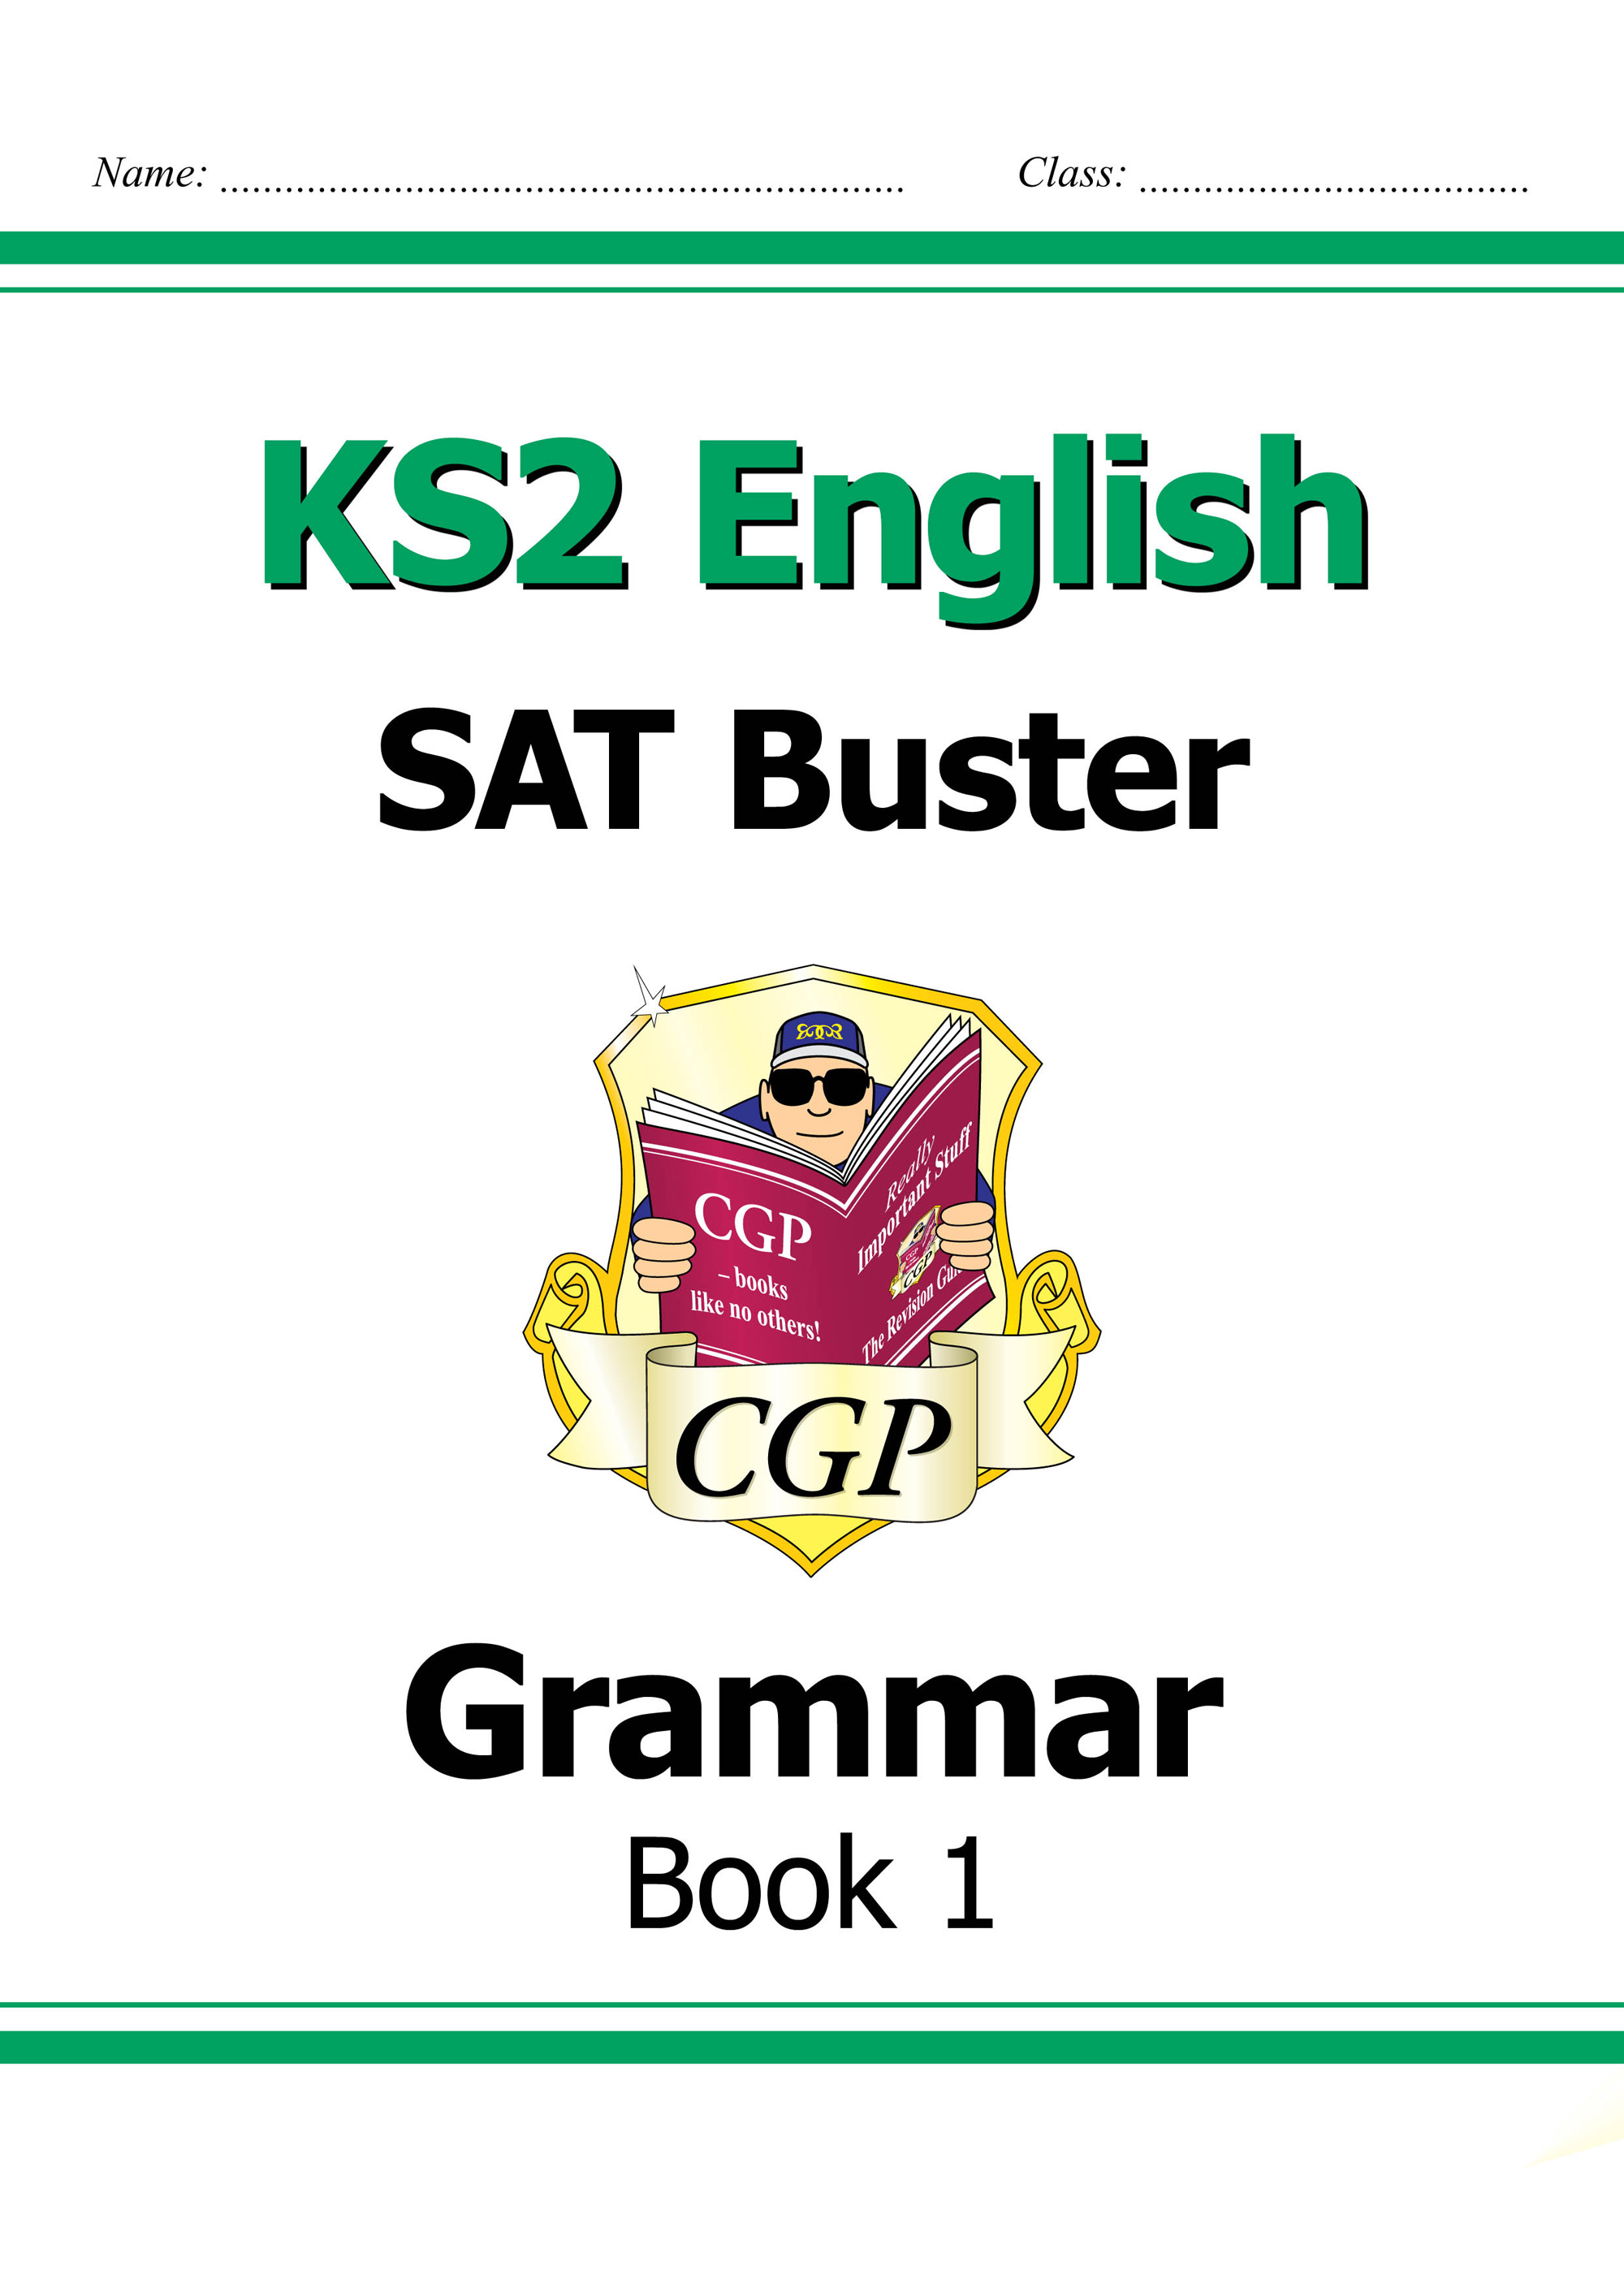 E6G22DK - KS2 English SAT Buster: Grammar Book 1 (for tests in 2018 and beyond)